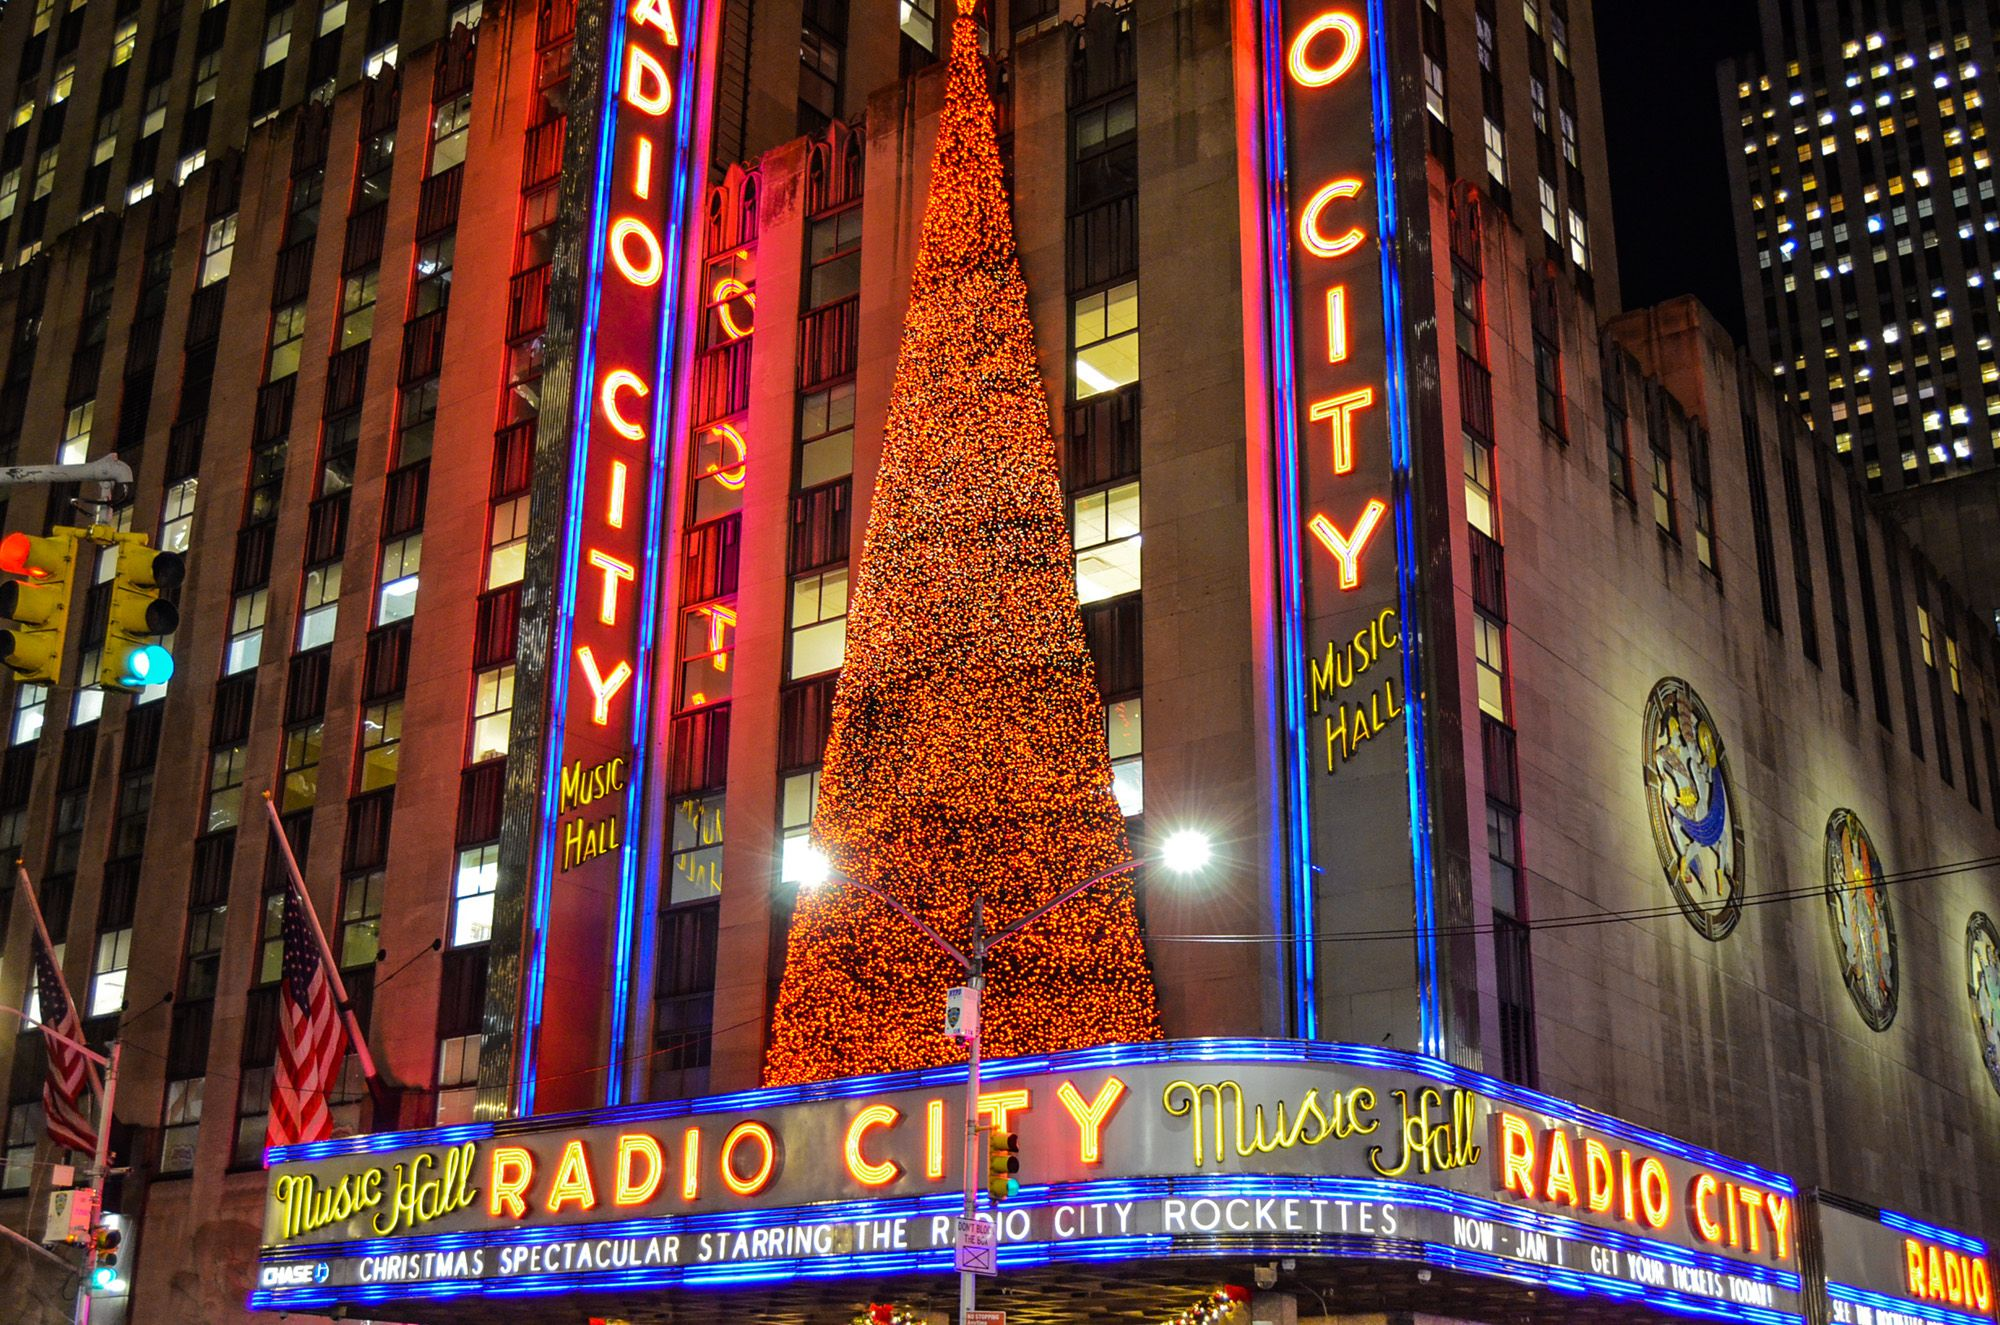 Radio City Hall Music, Ruta andando por Manhattan